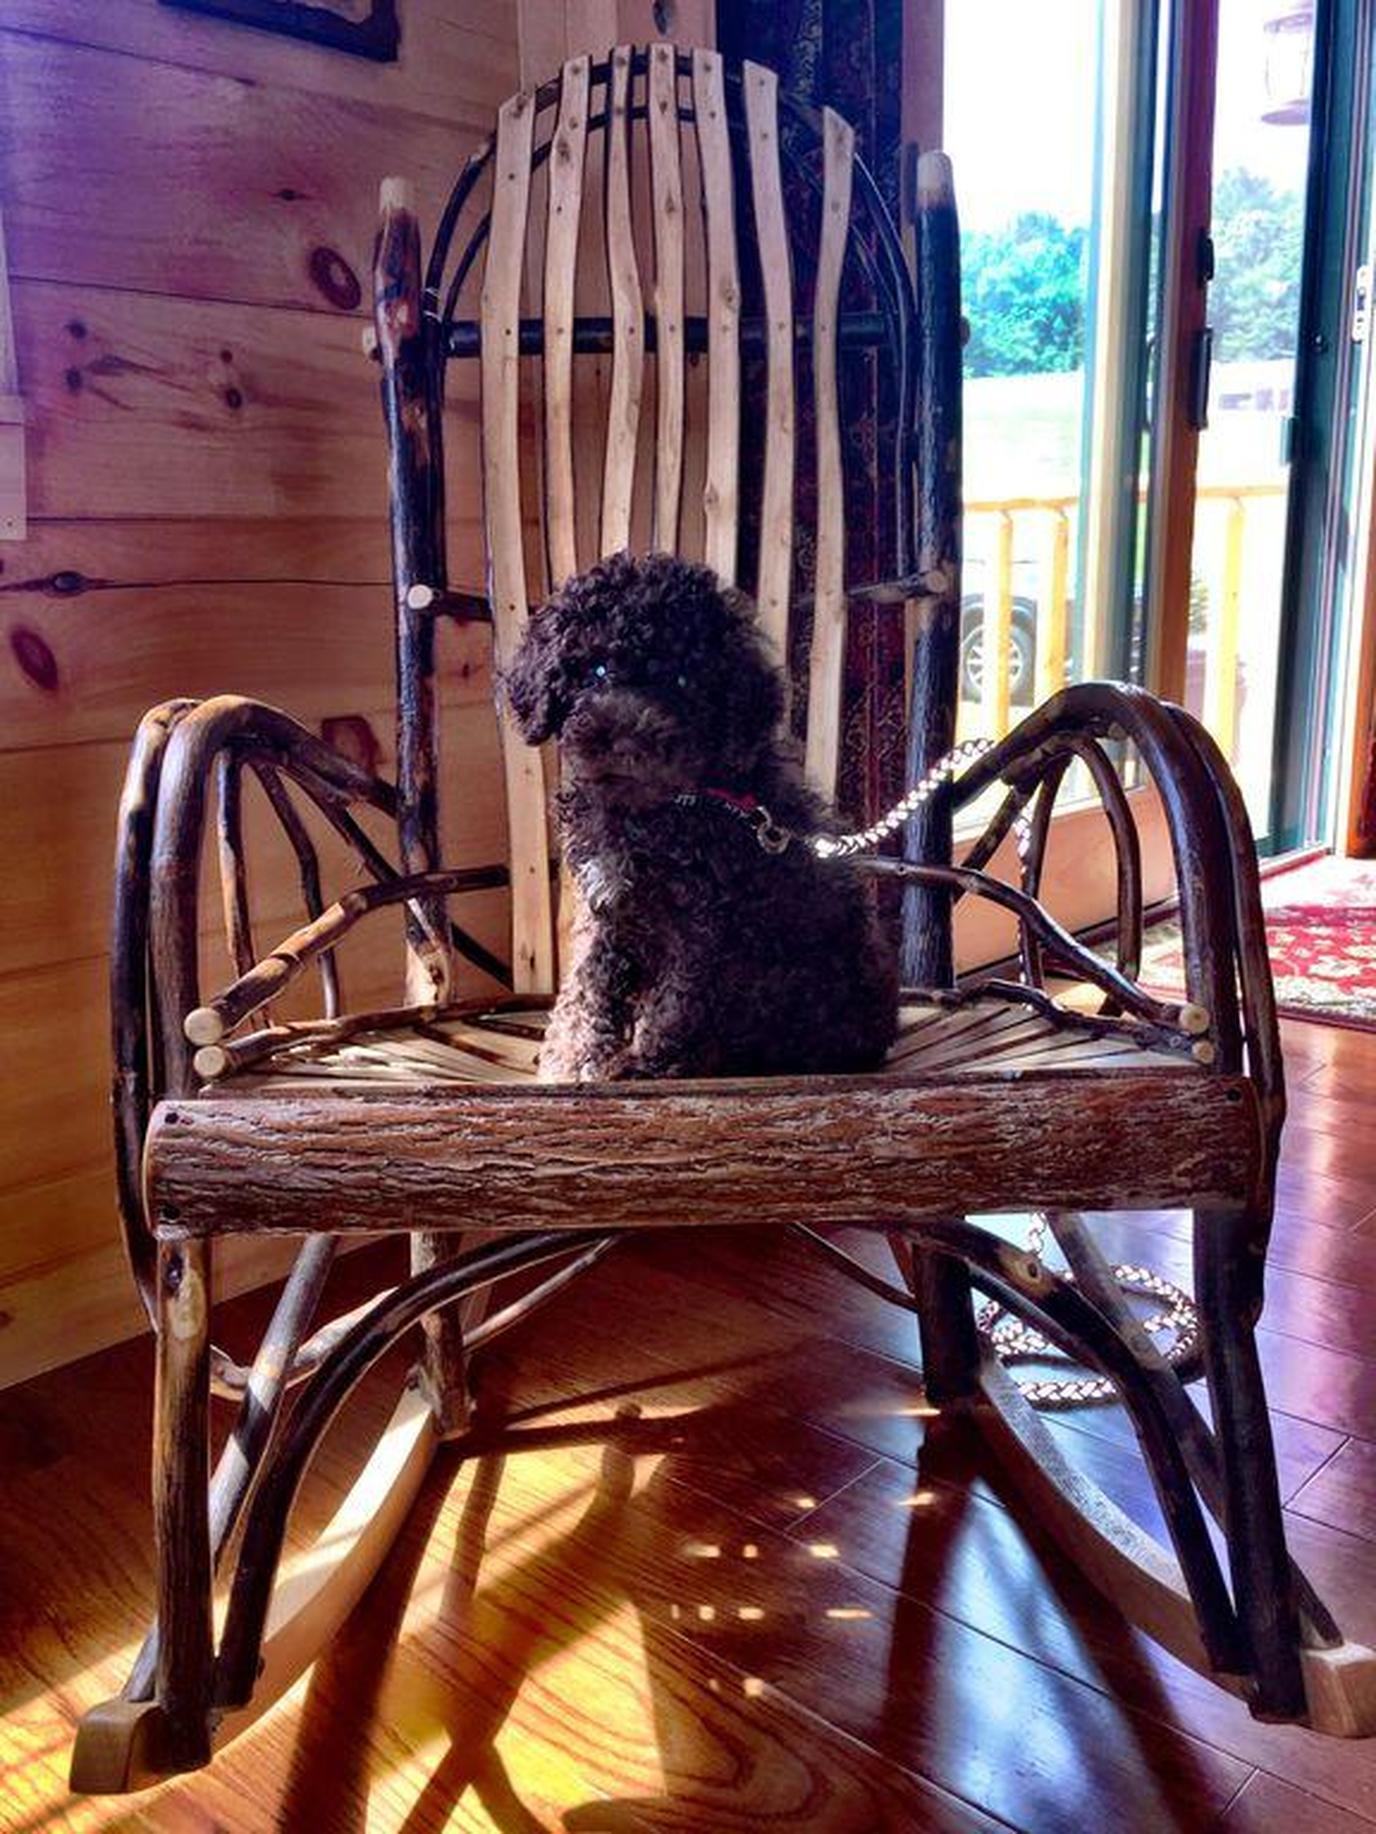 a dog at Luxury New Log Cabin